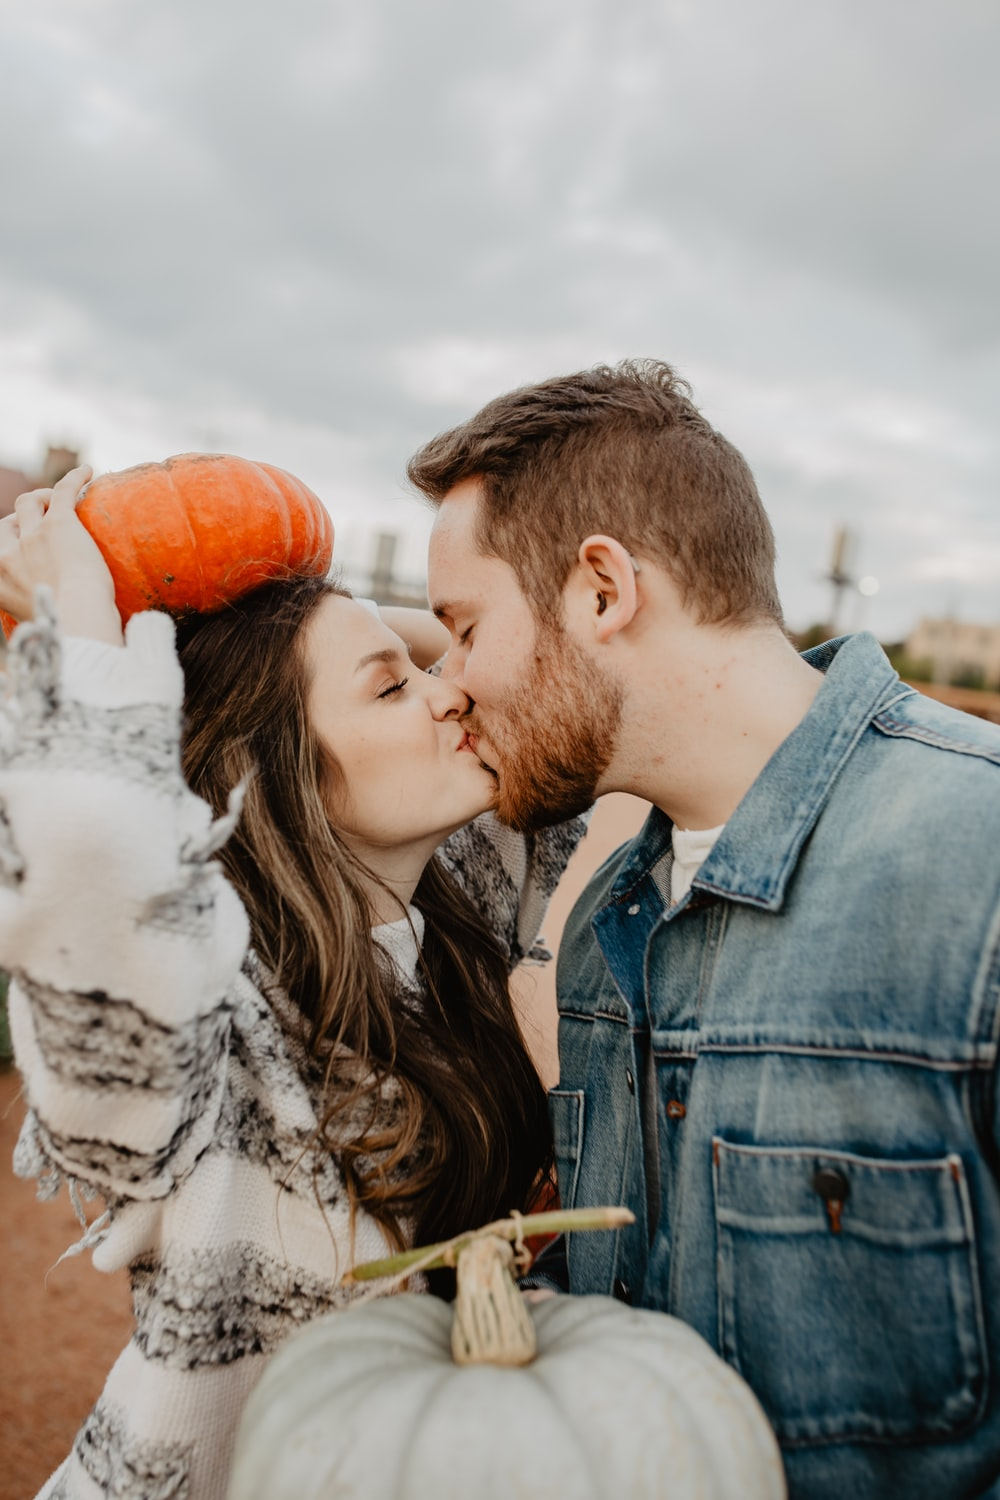 man and woman kissing holding squash during daytime